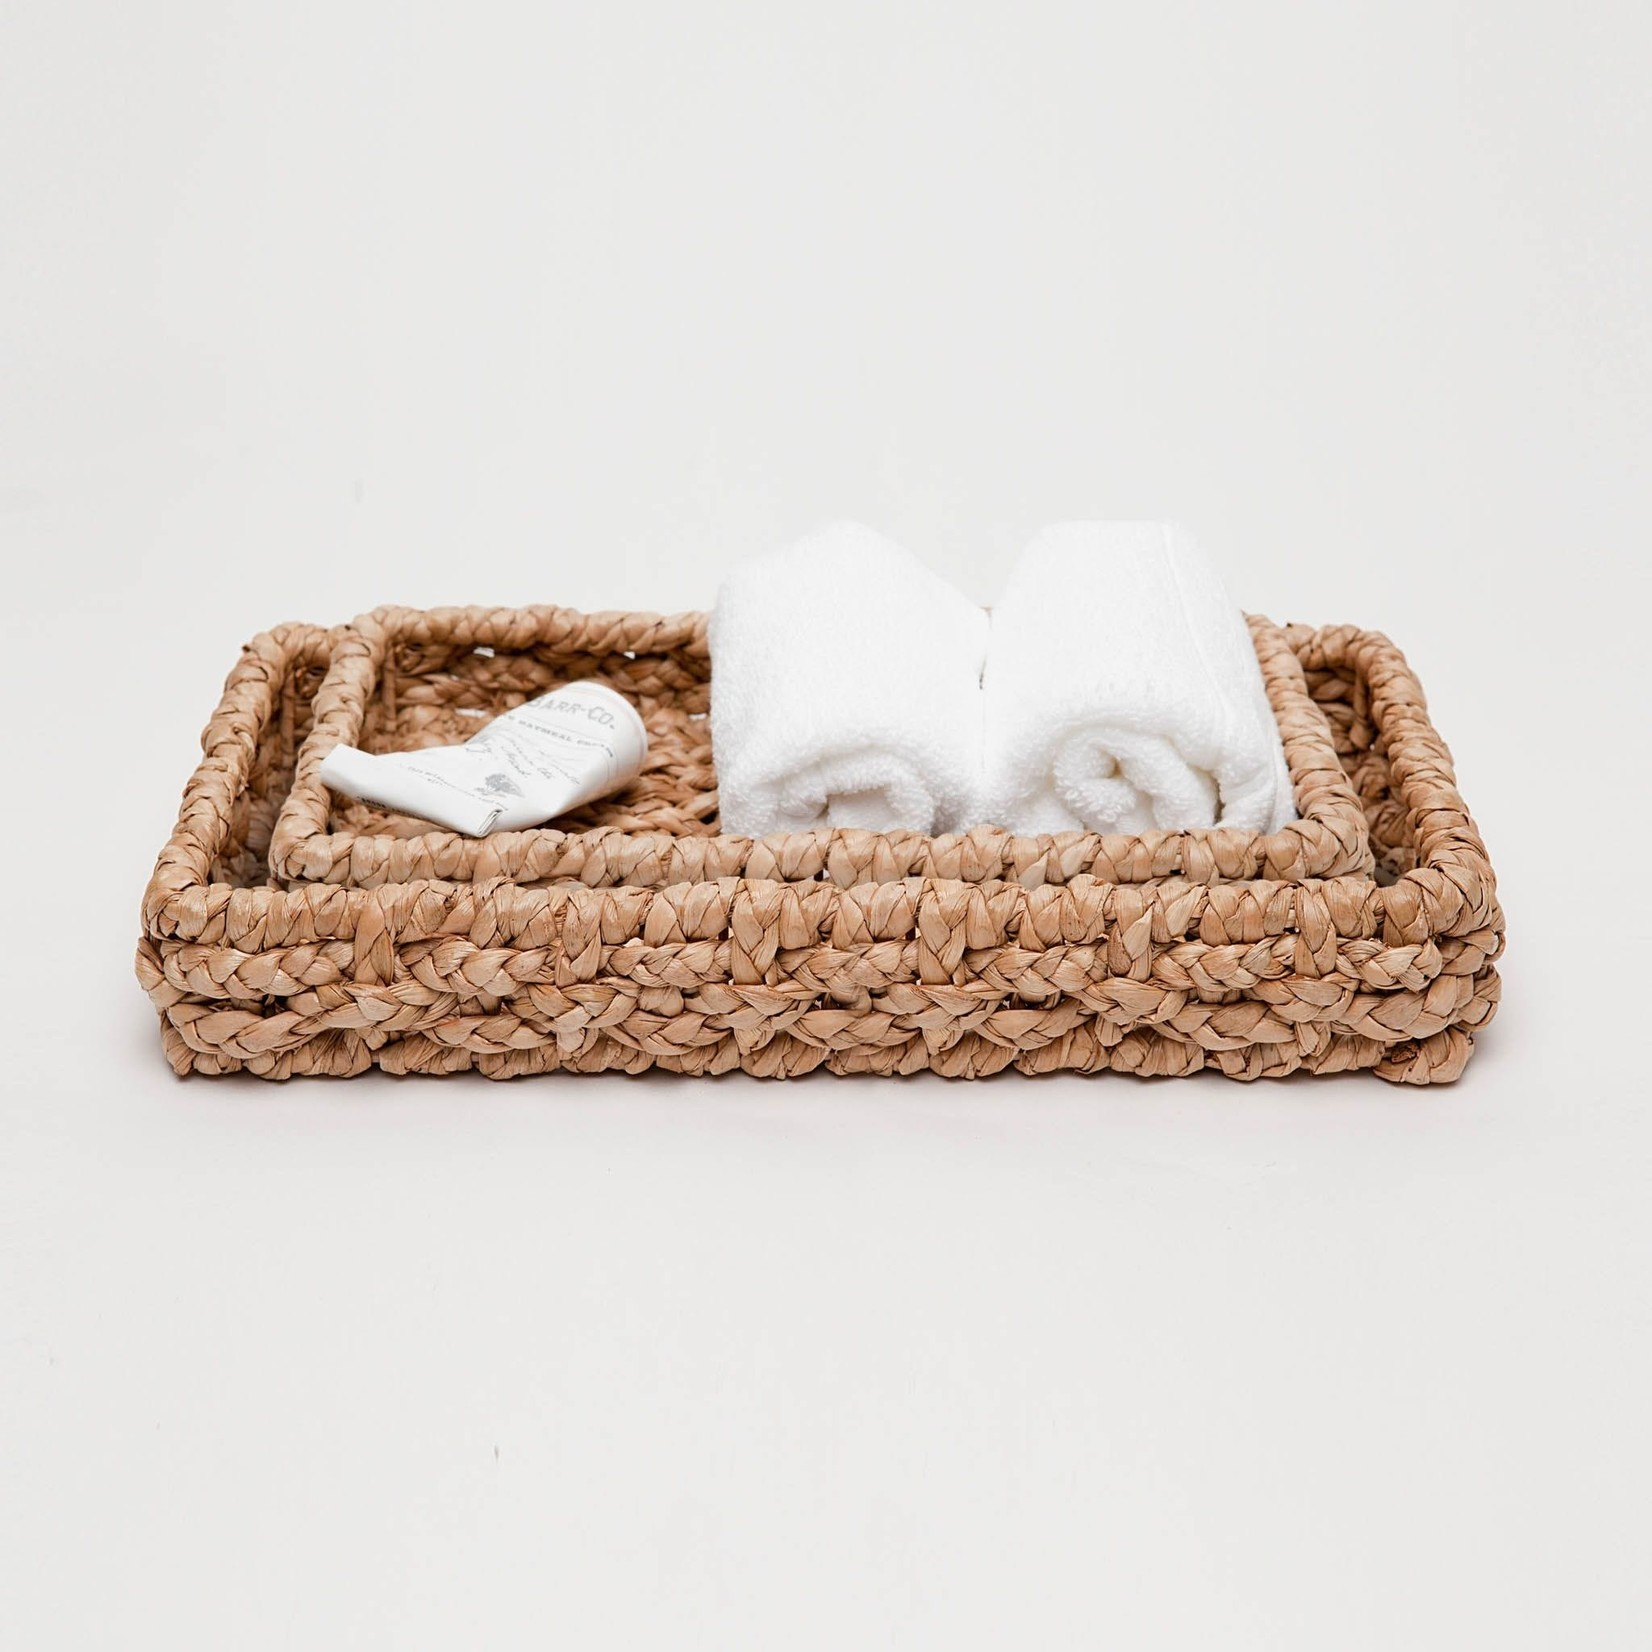 Pigeon and Poodle Destin Braided Seagrass Bathroom Set